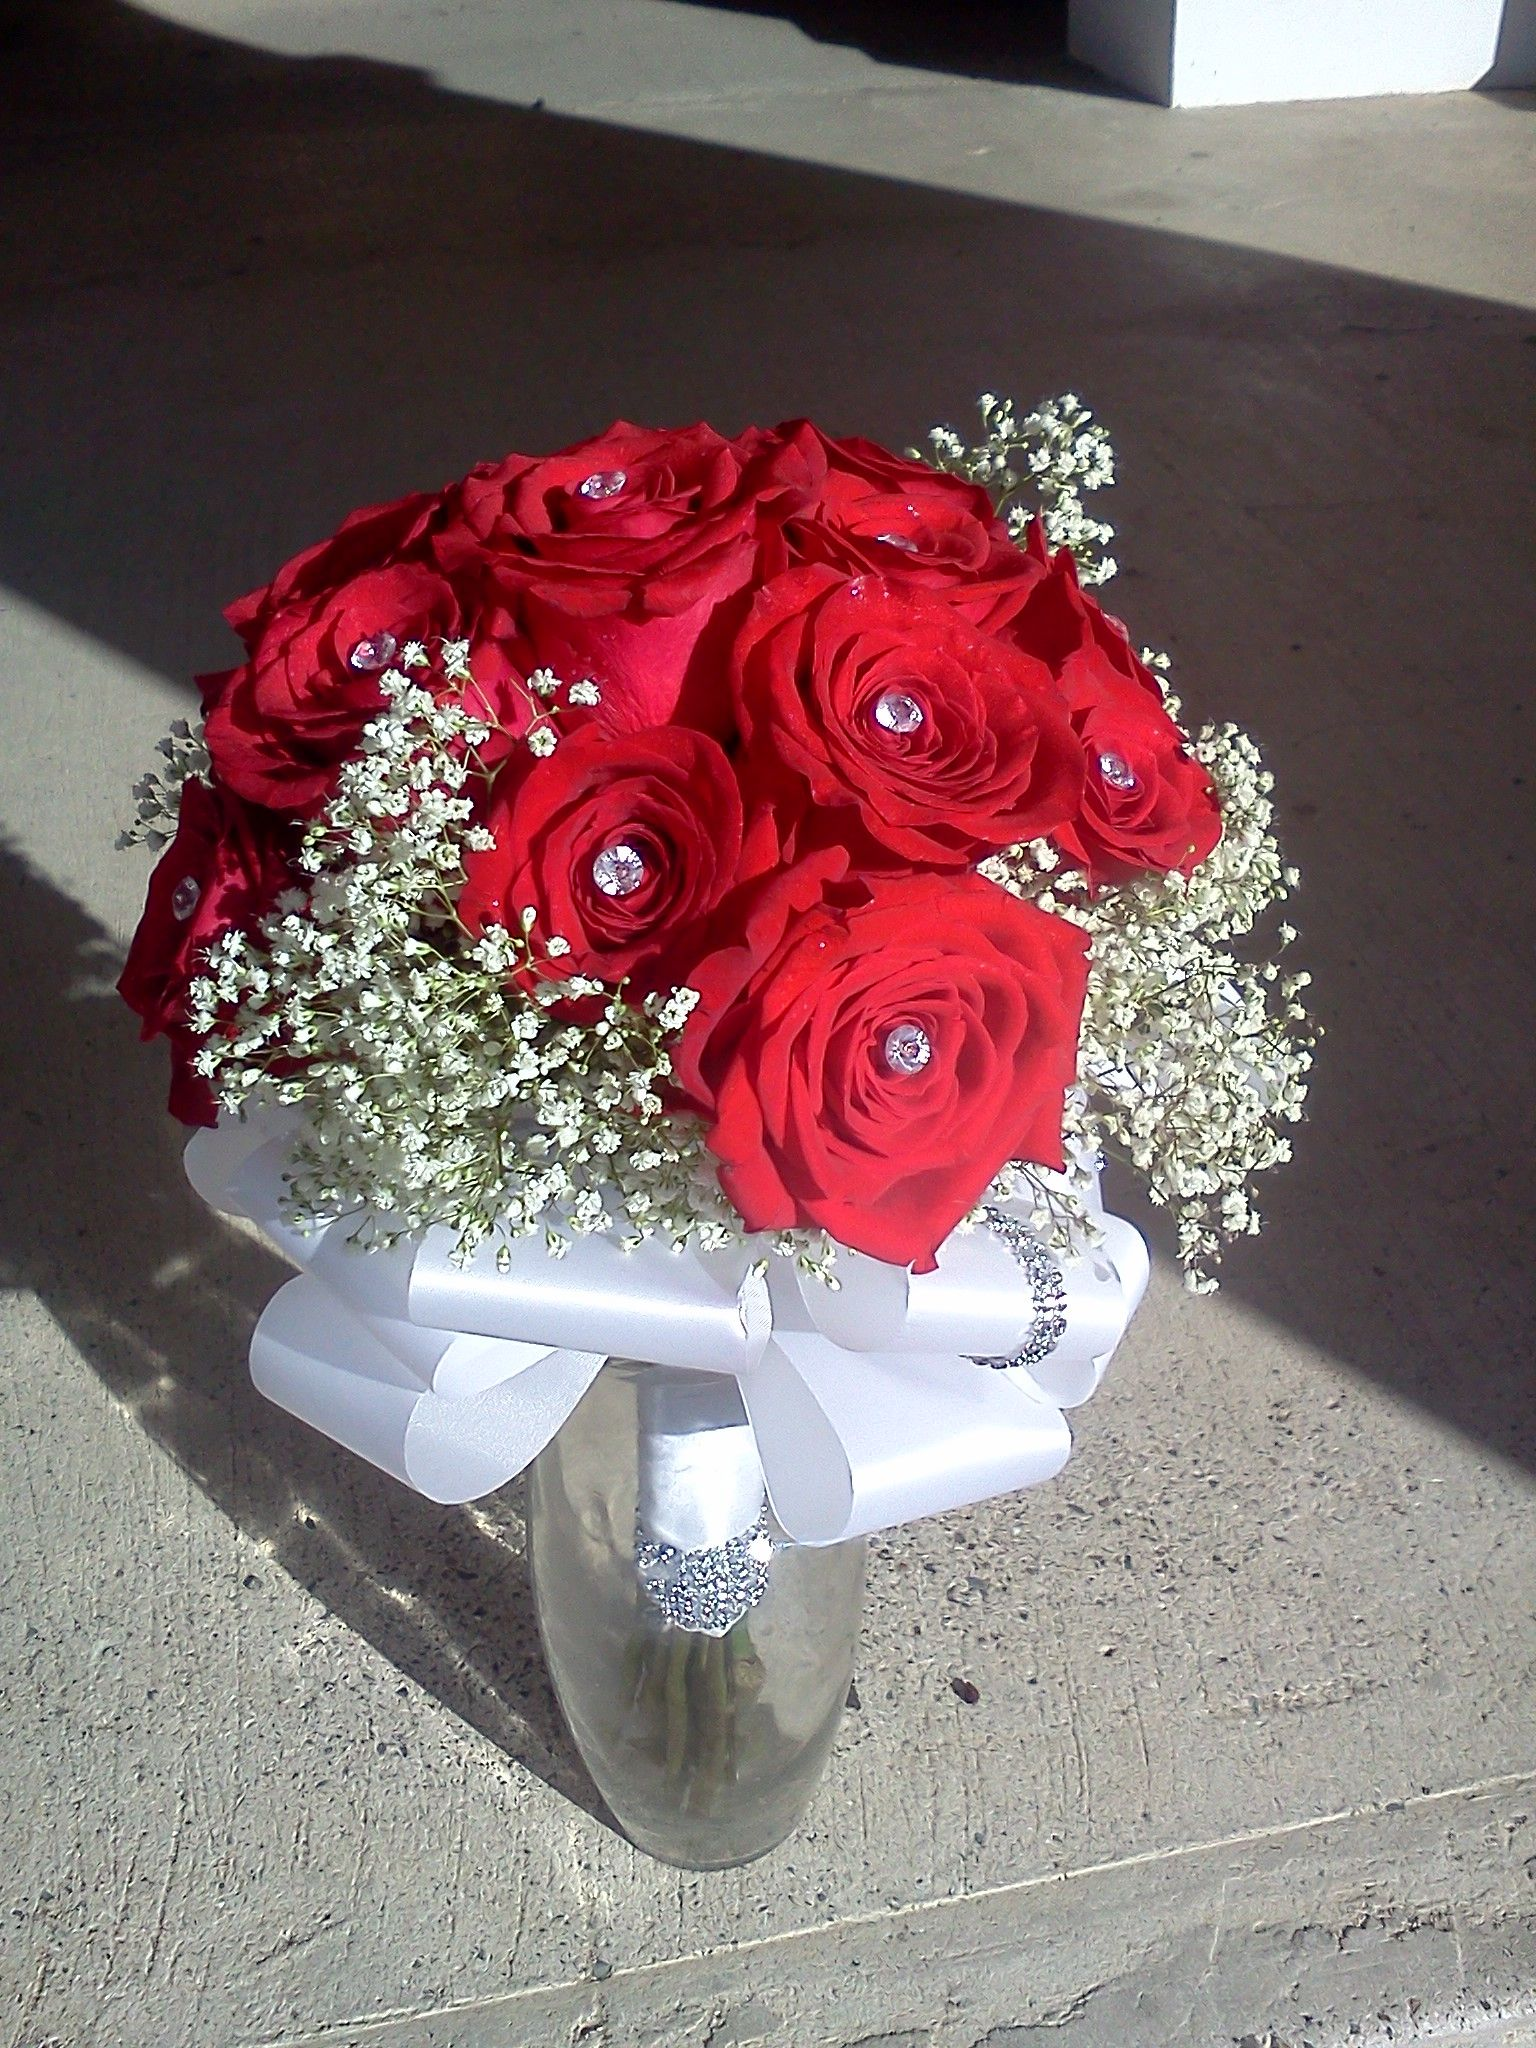 Red rose bridal bouquet with diamond head pinswhite ribbon and